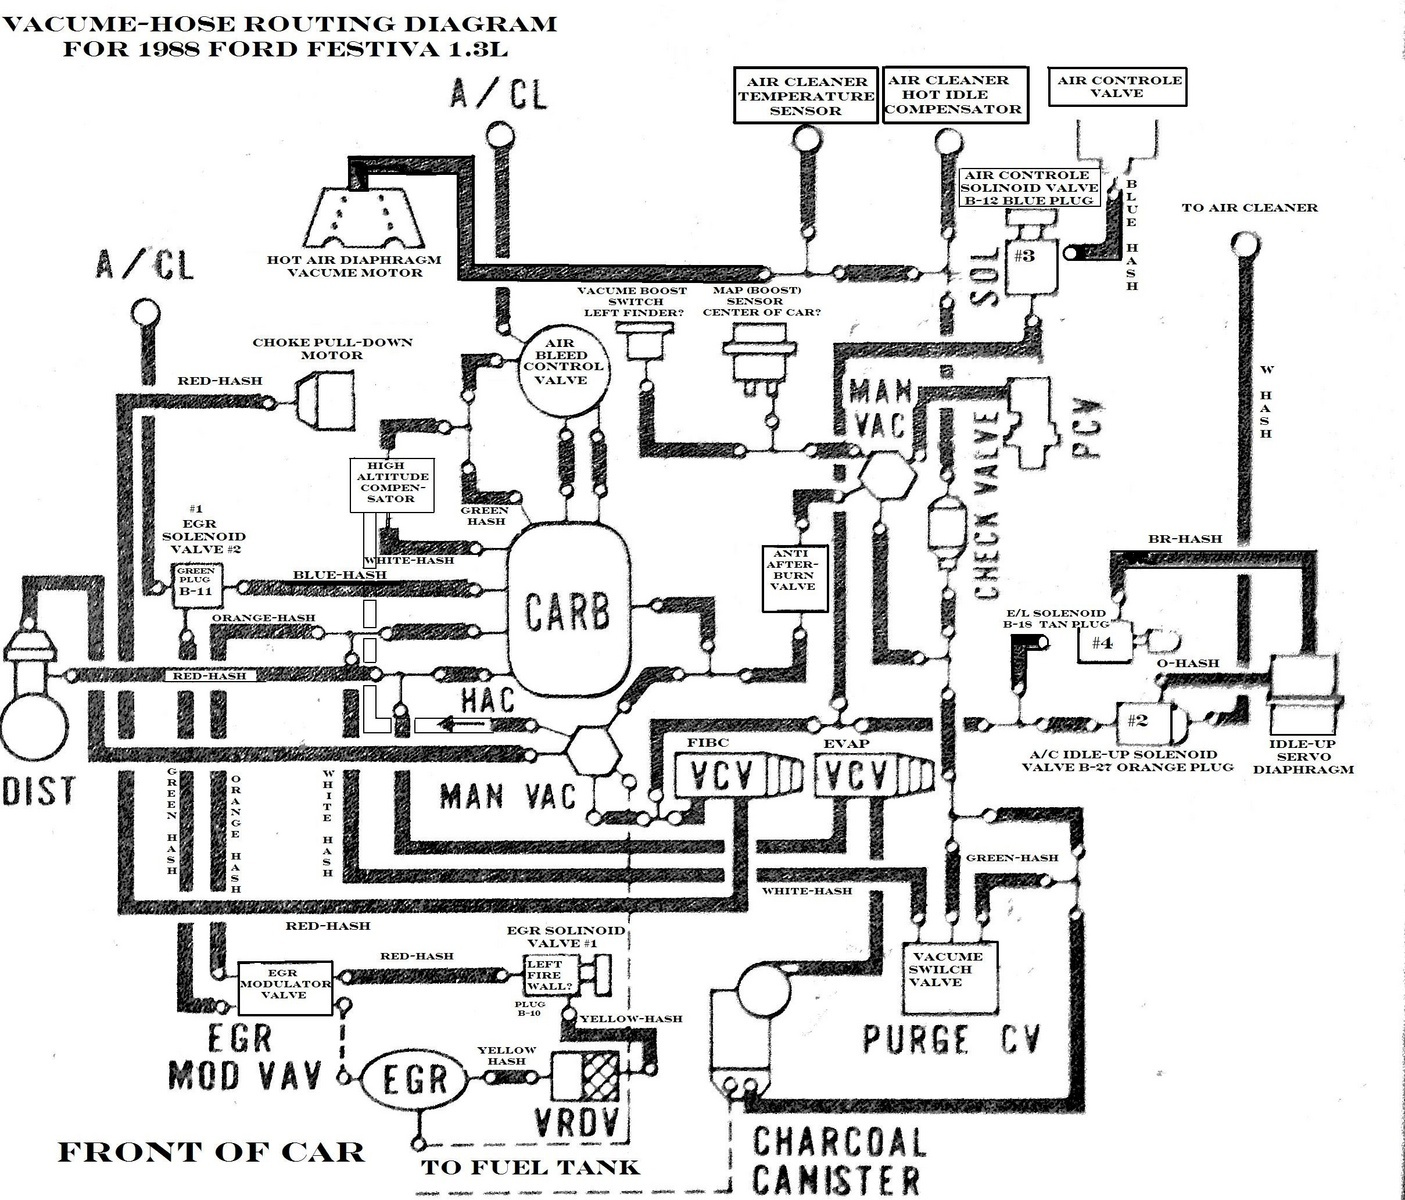 Ford Festiva Fuse Box Archive Of Automotive Wiring Diagram 1990 Chevy Location Simple Rh David Huggett Co Uk